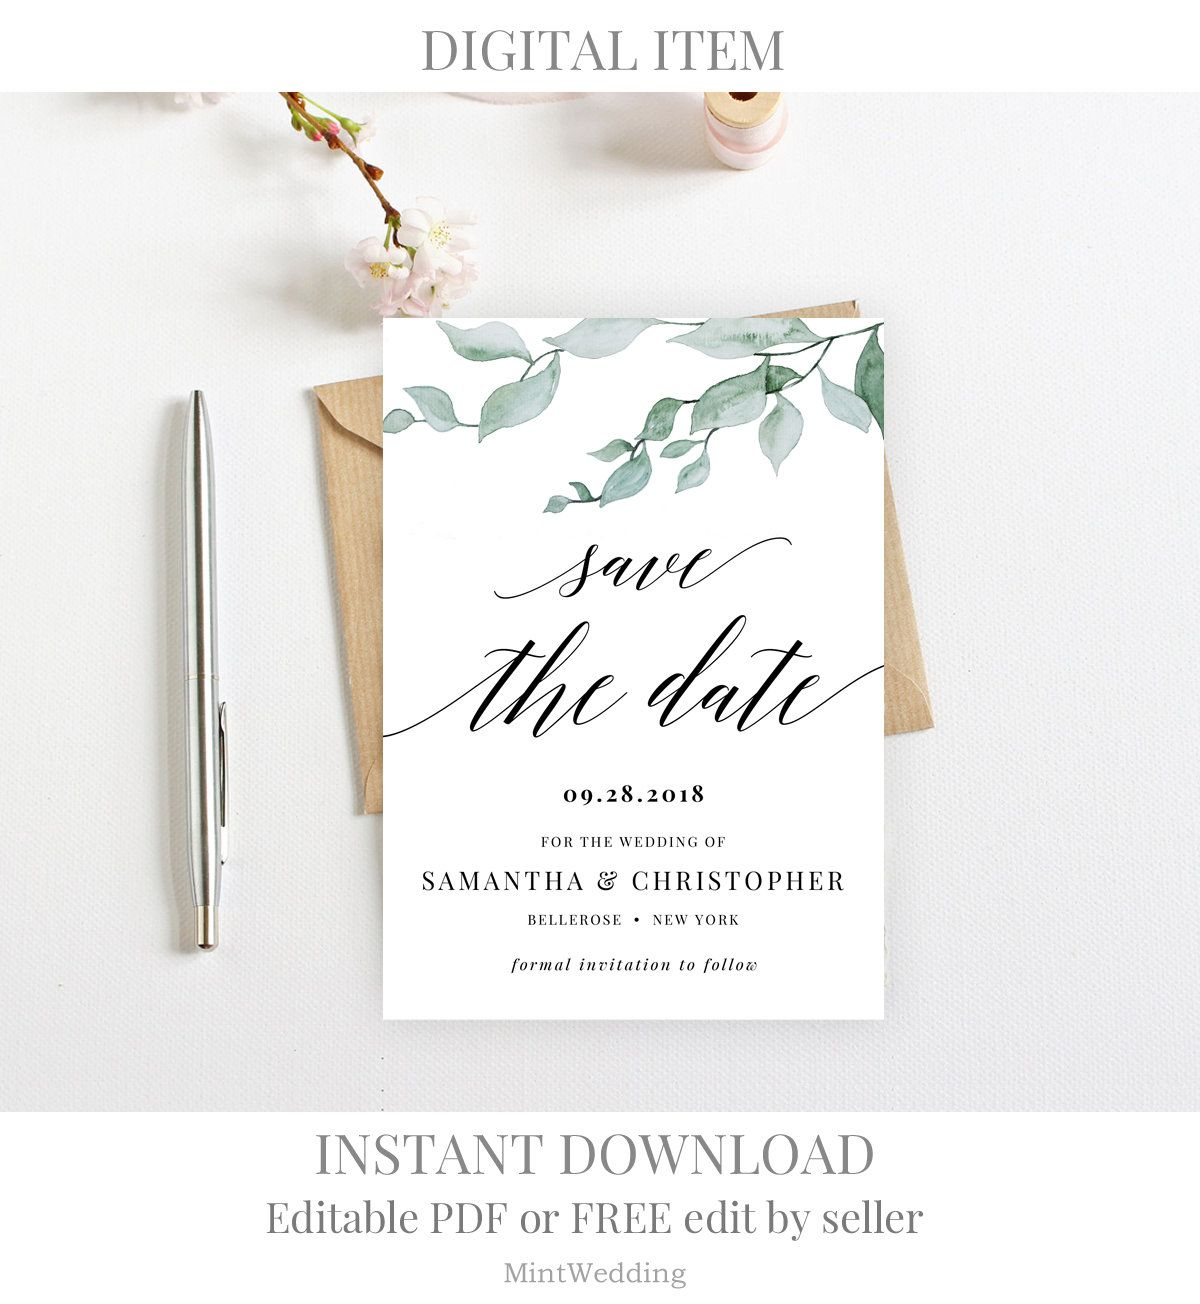 Greenery Save The Date Card Invitation Printable Template Eucalyptus Modern Calligraphy Edit Save The Date Invitations Wedding Invitations Save The Date Cards